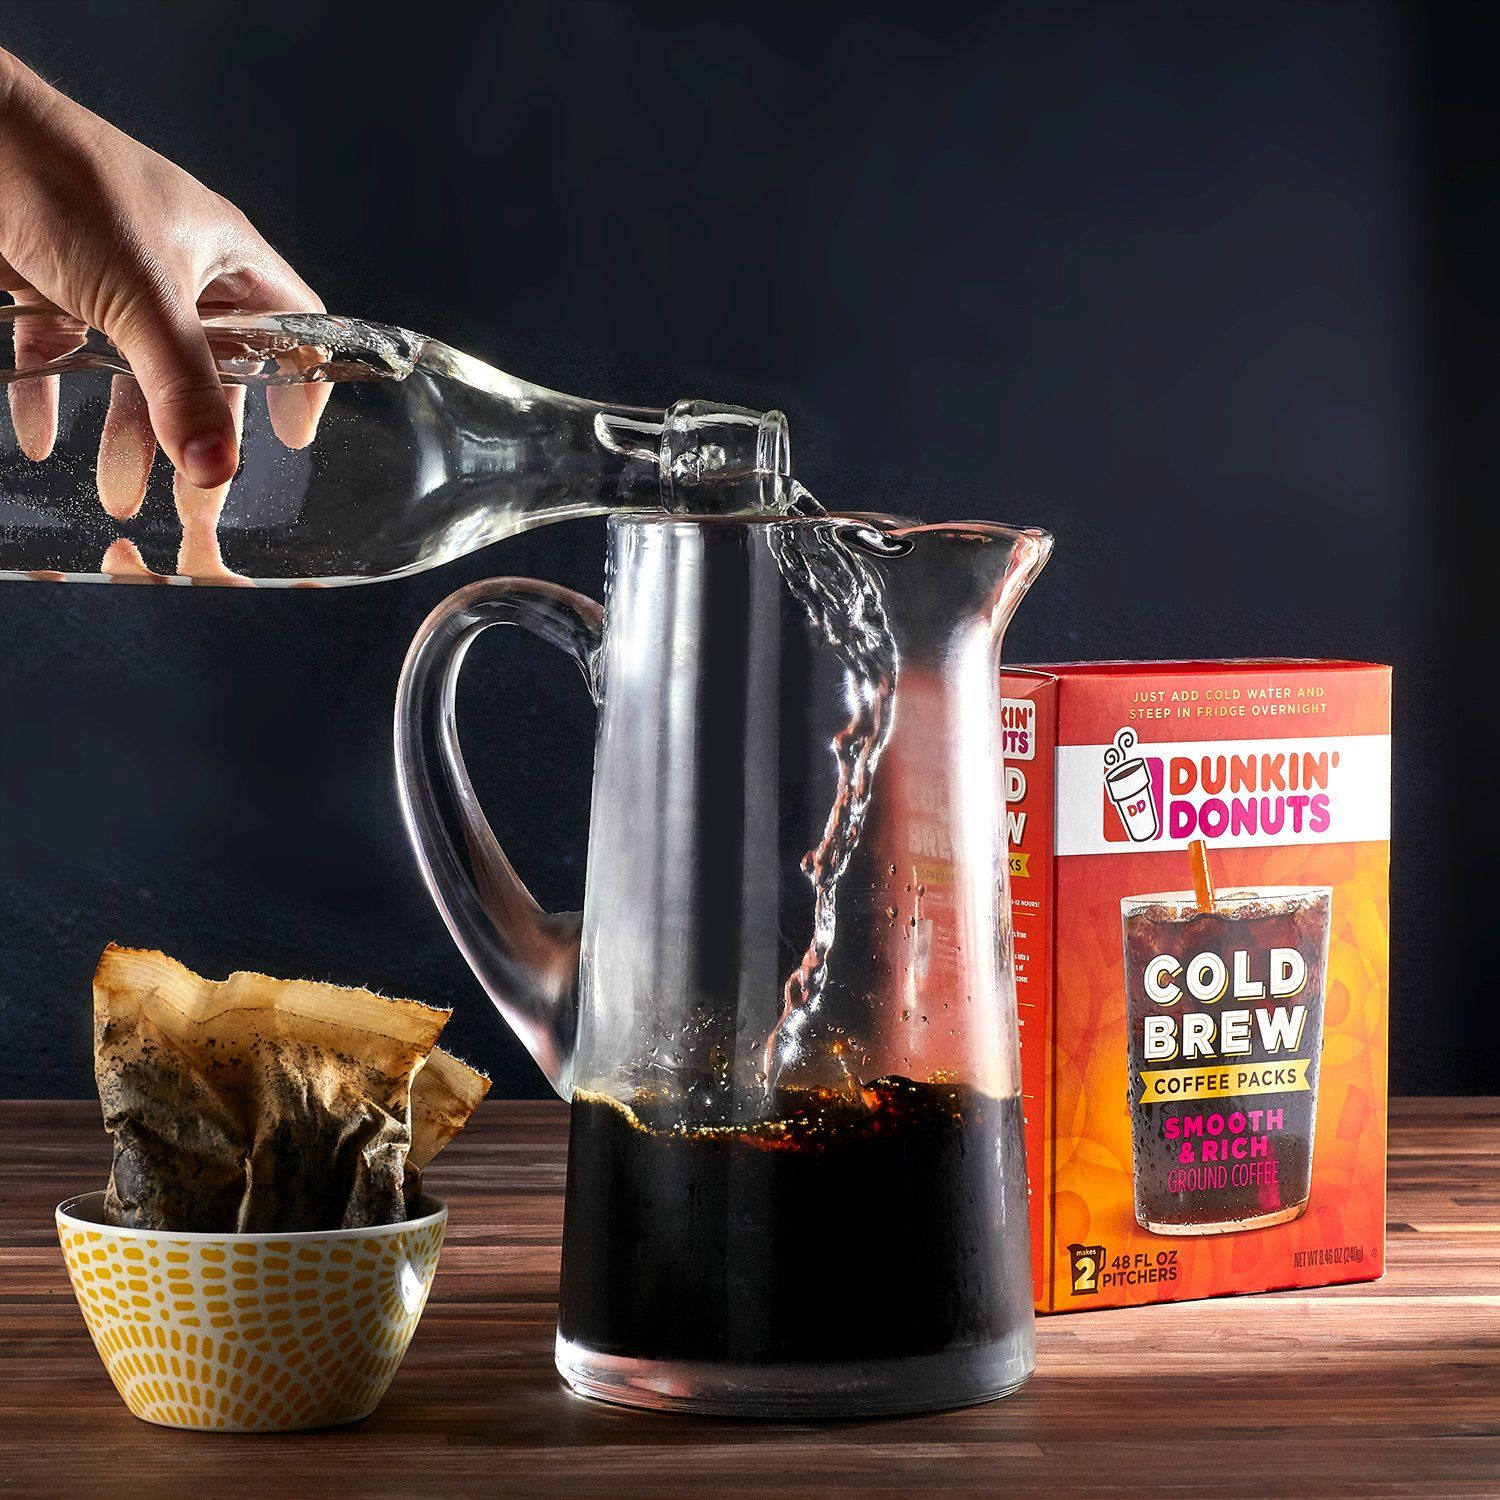 Best Coffee Beans For Cold Brew Iced coffee maker